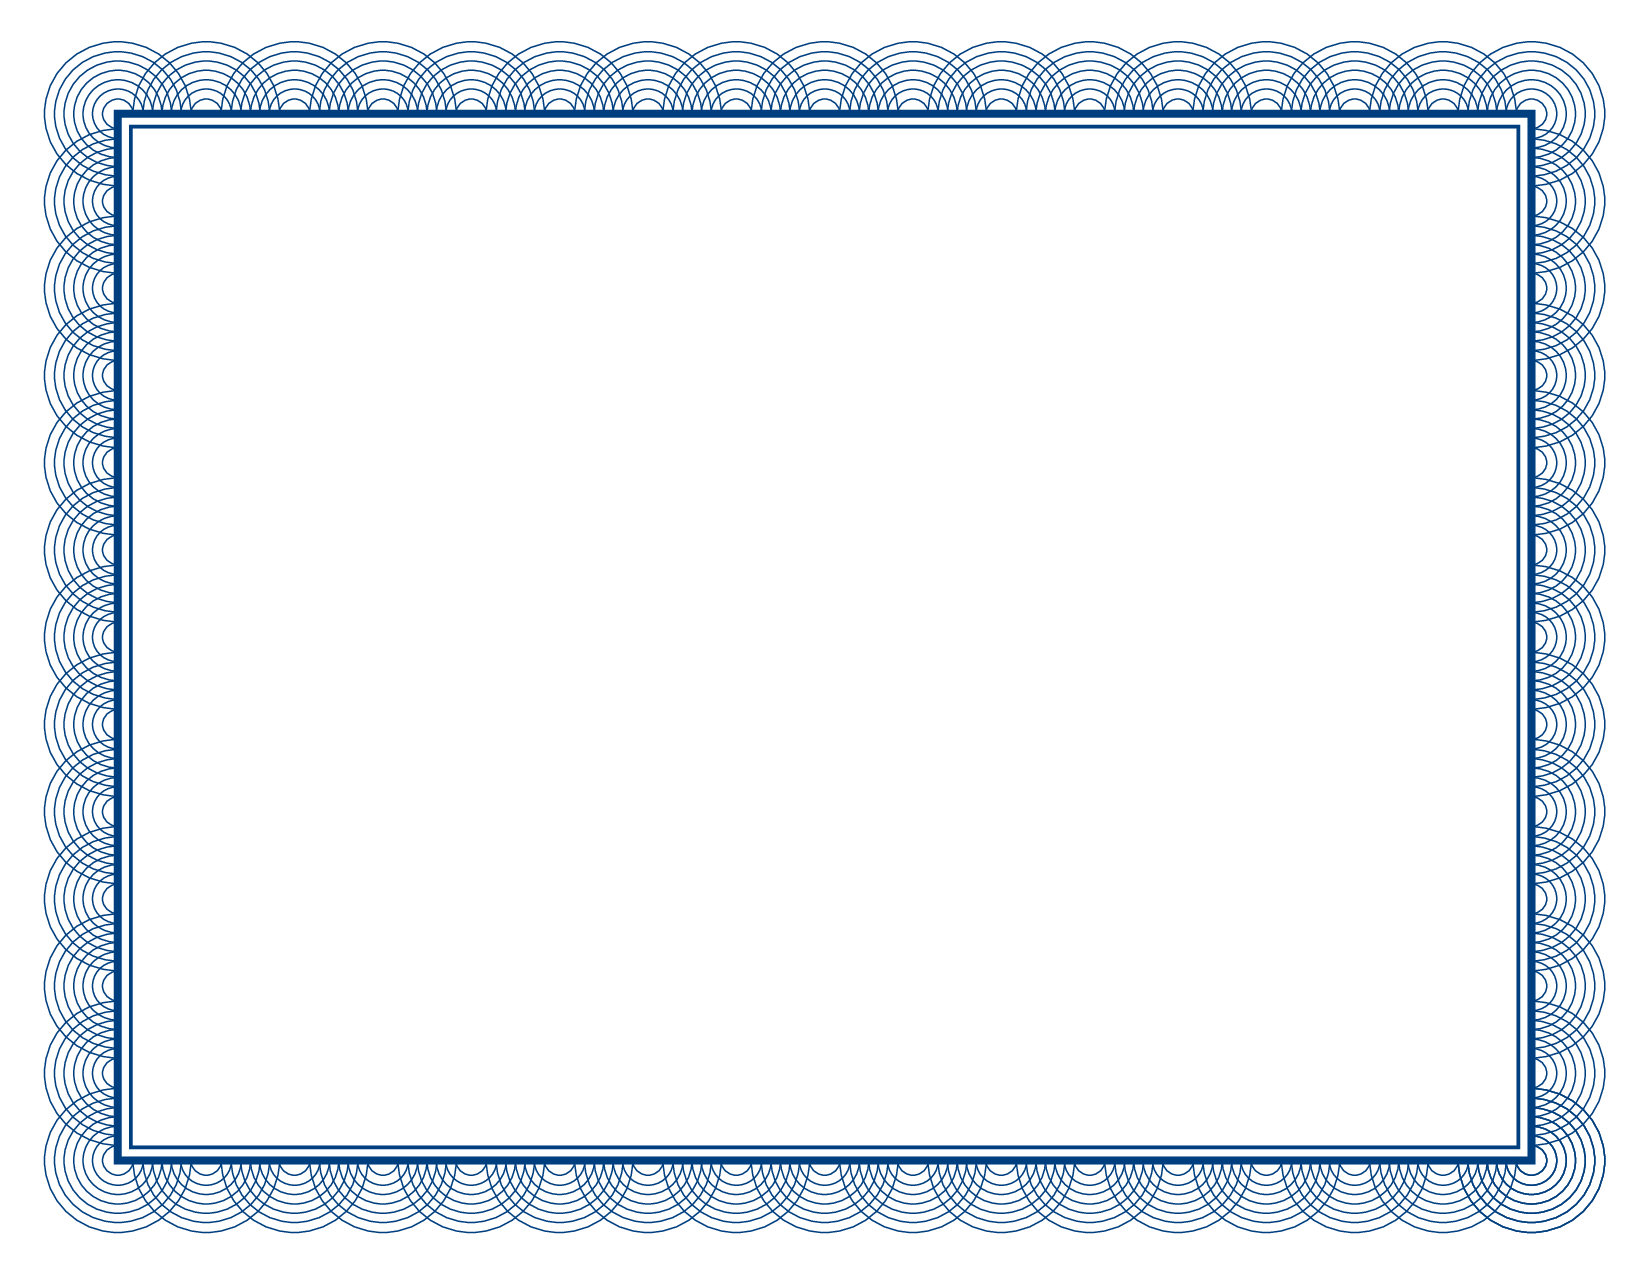 Certificate border template free clipart best for Blue certificate border